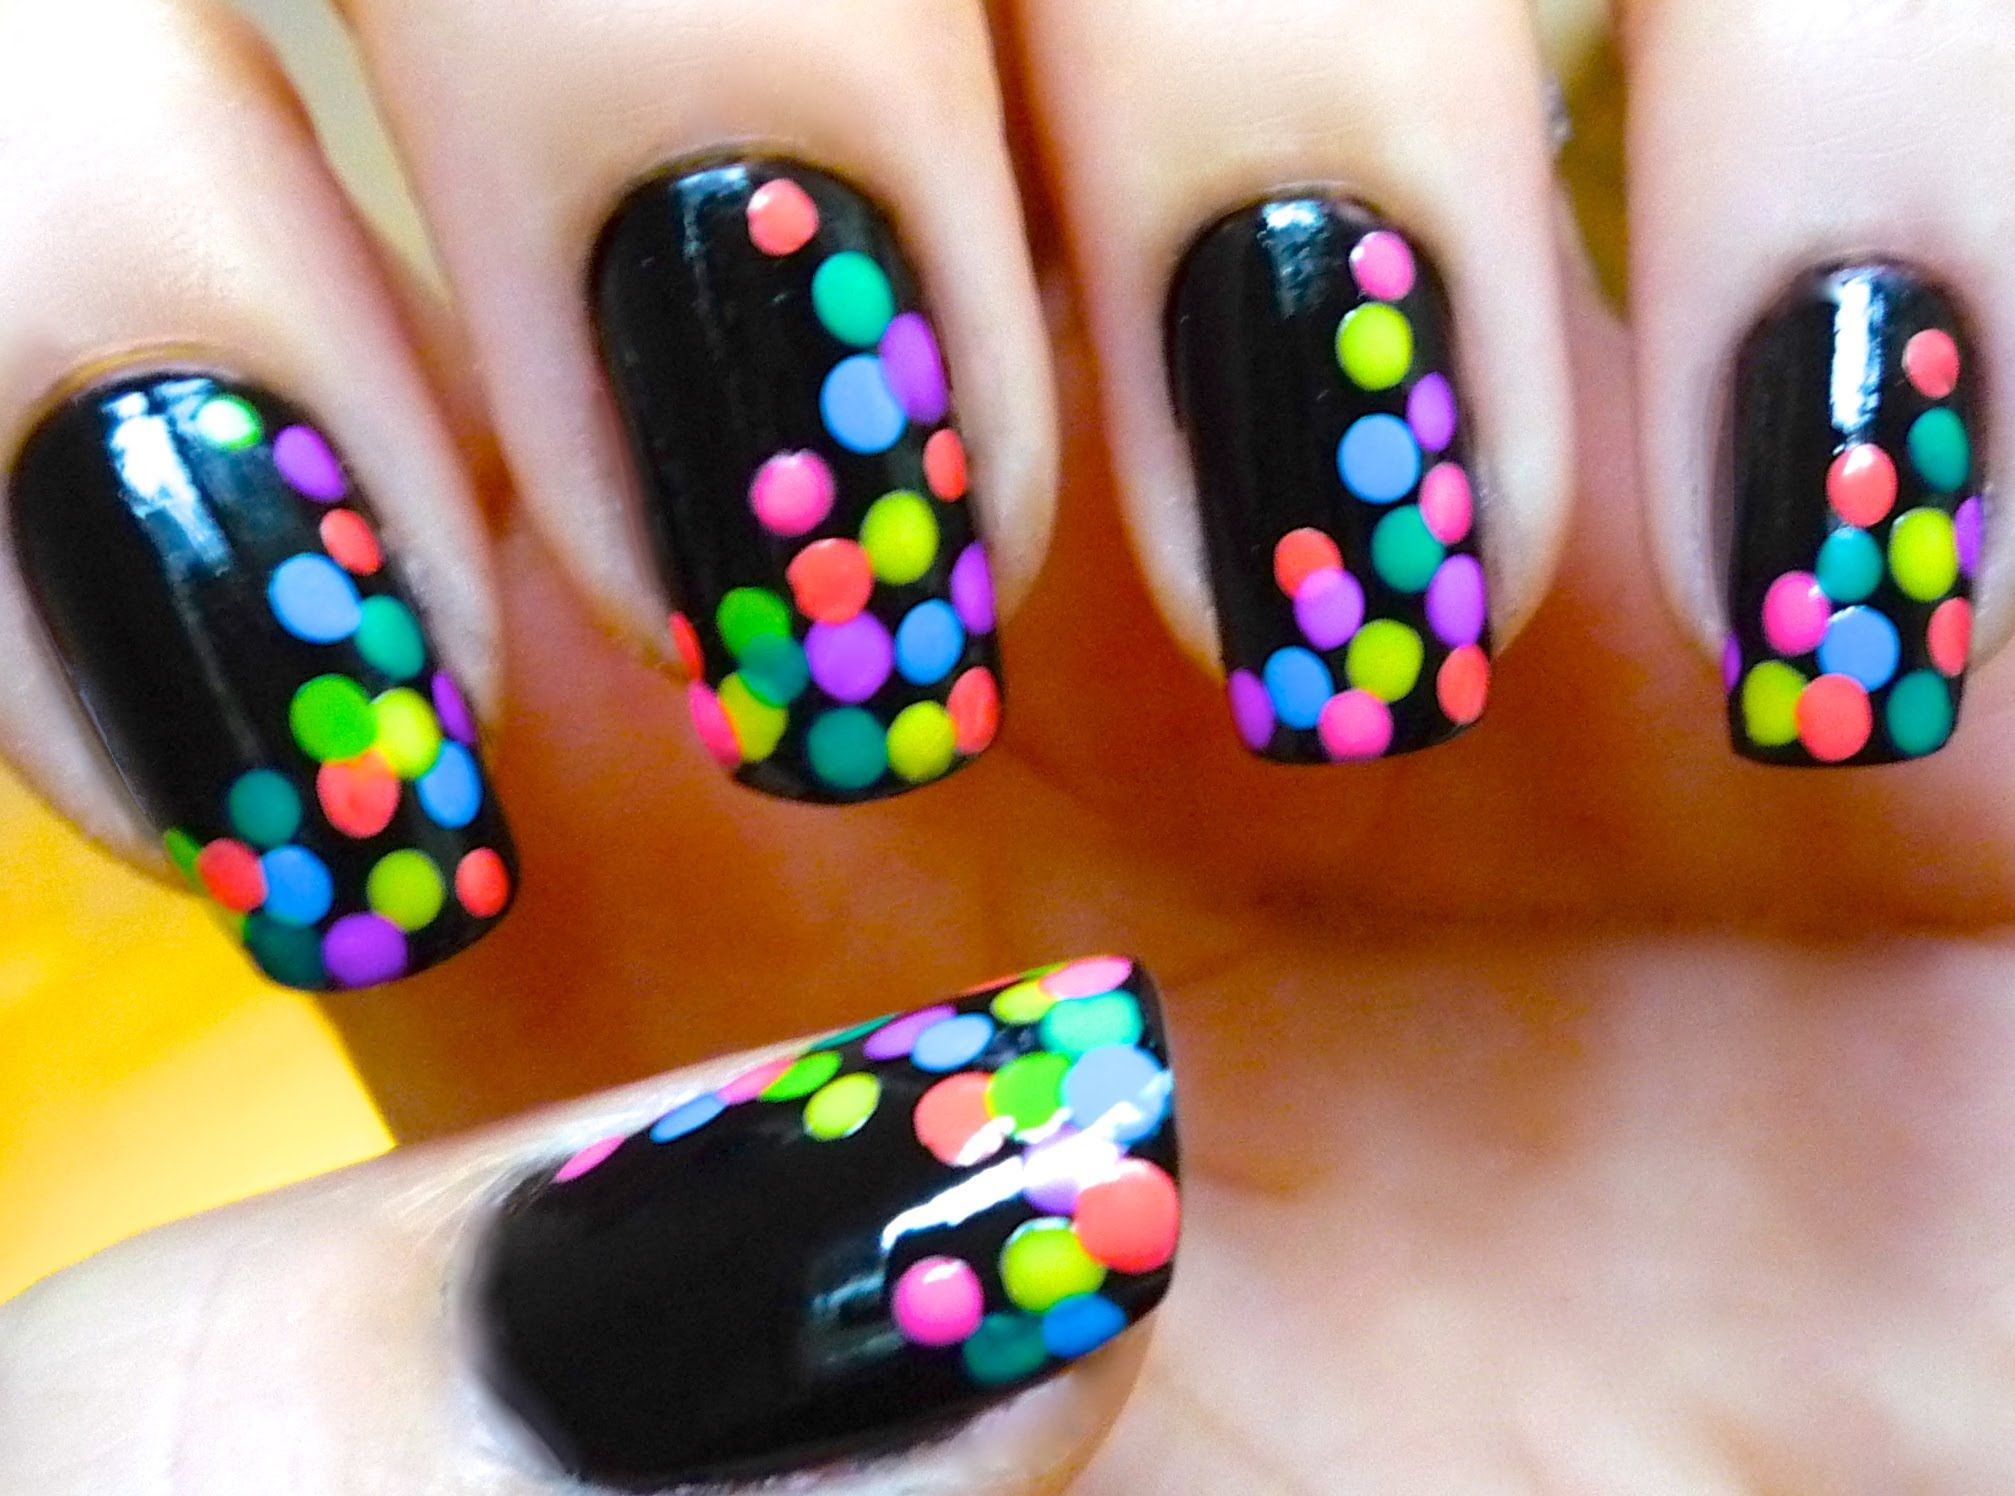 Spotted black colorful nails nail art 2013 trends nails spotted black colorful nails nail art 2013 trends prinsesfo Choice Image